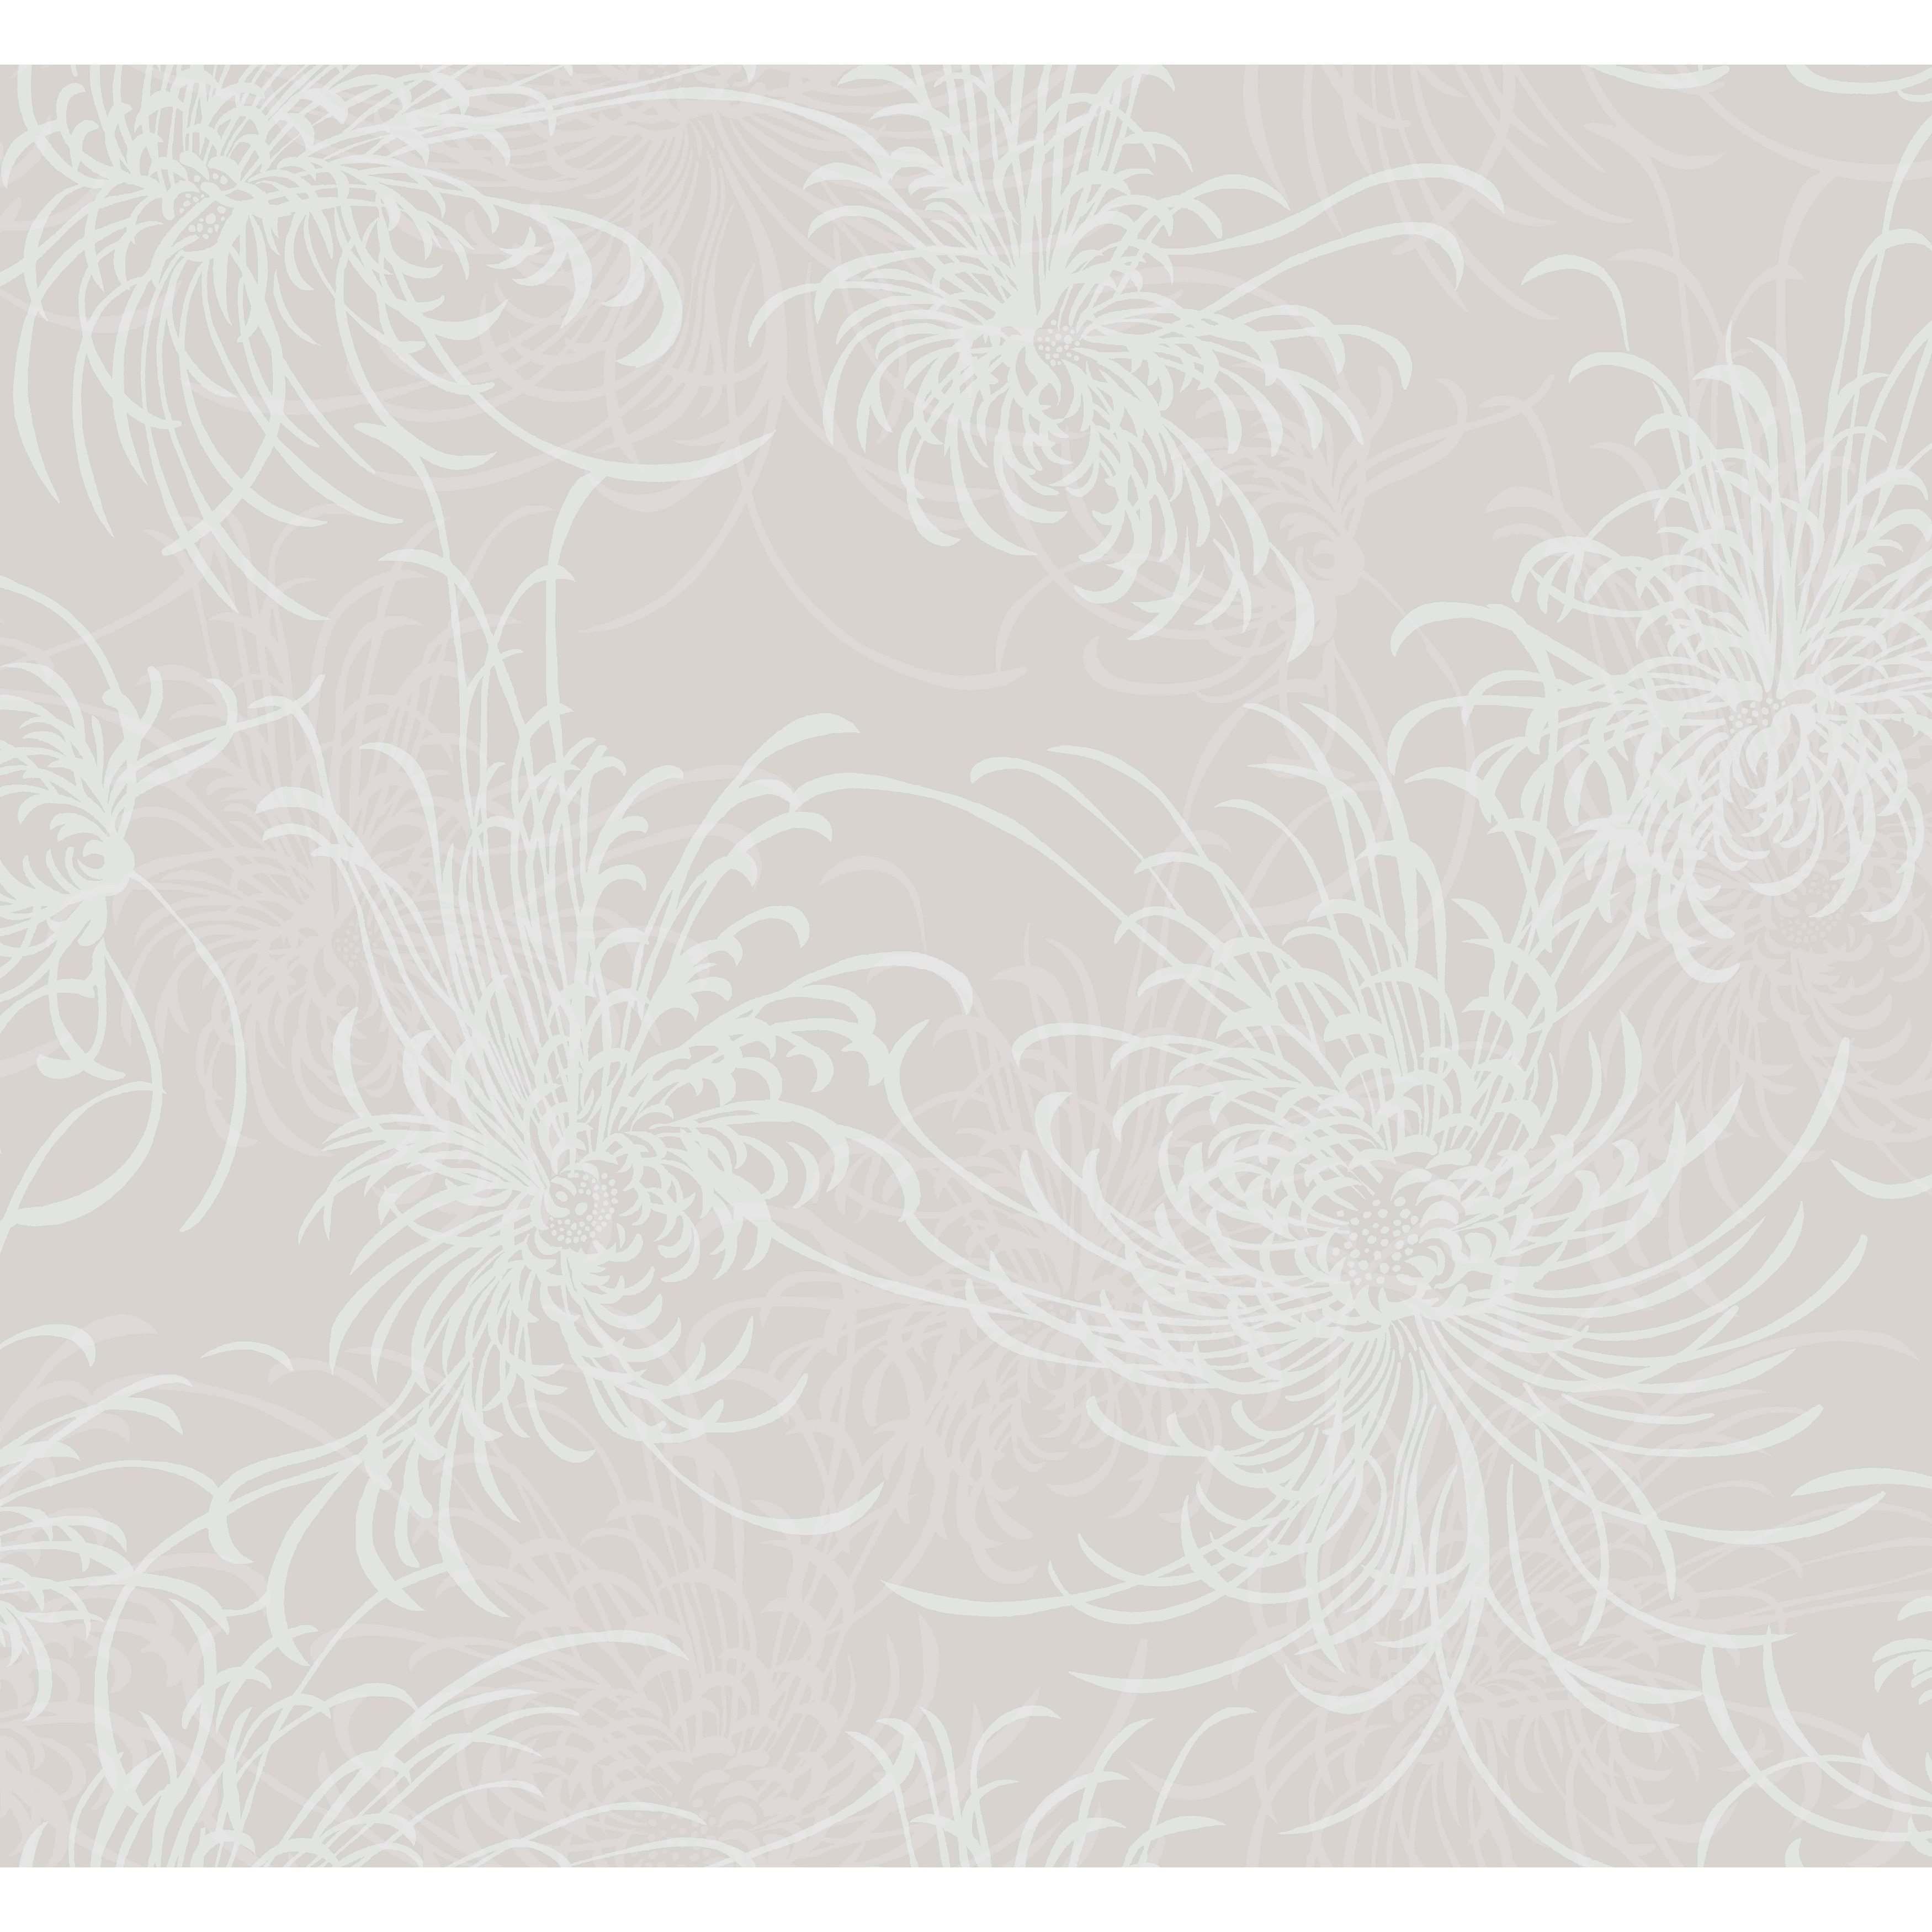 Shop Guelph Noell Floral Metallic Wallpaper 27 X 27 On Sale